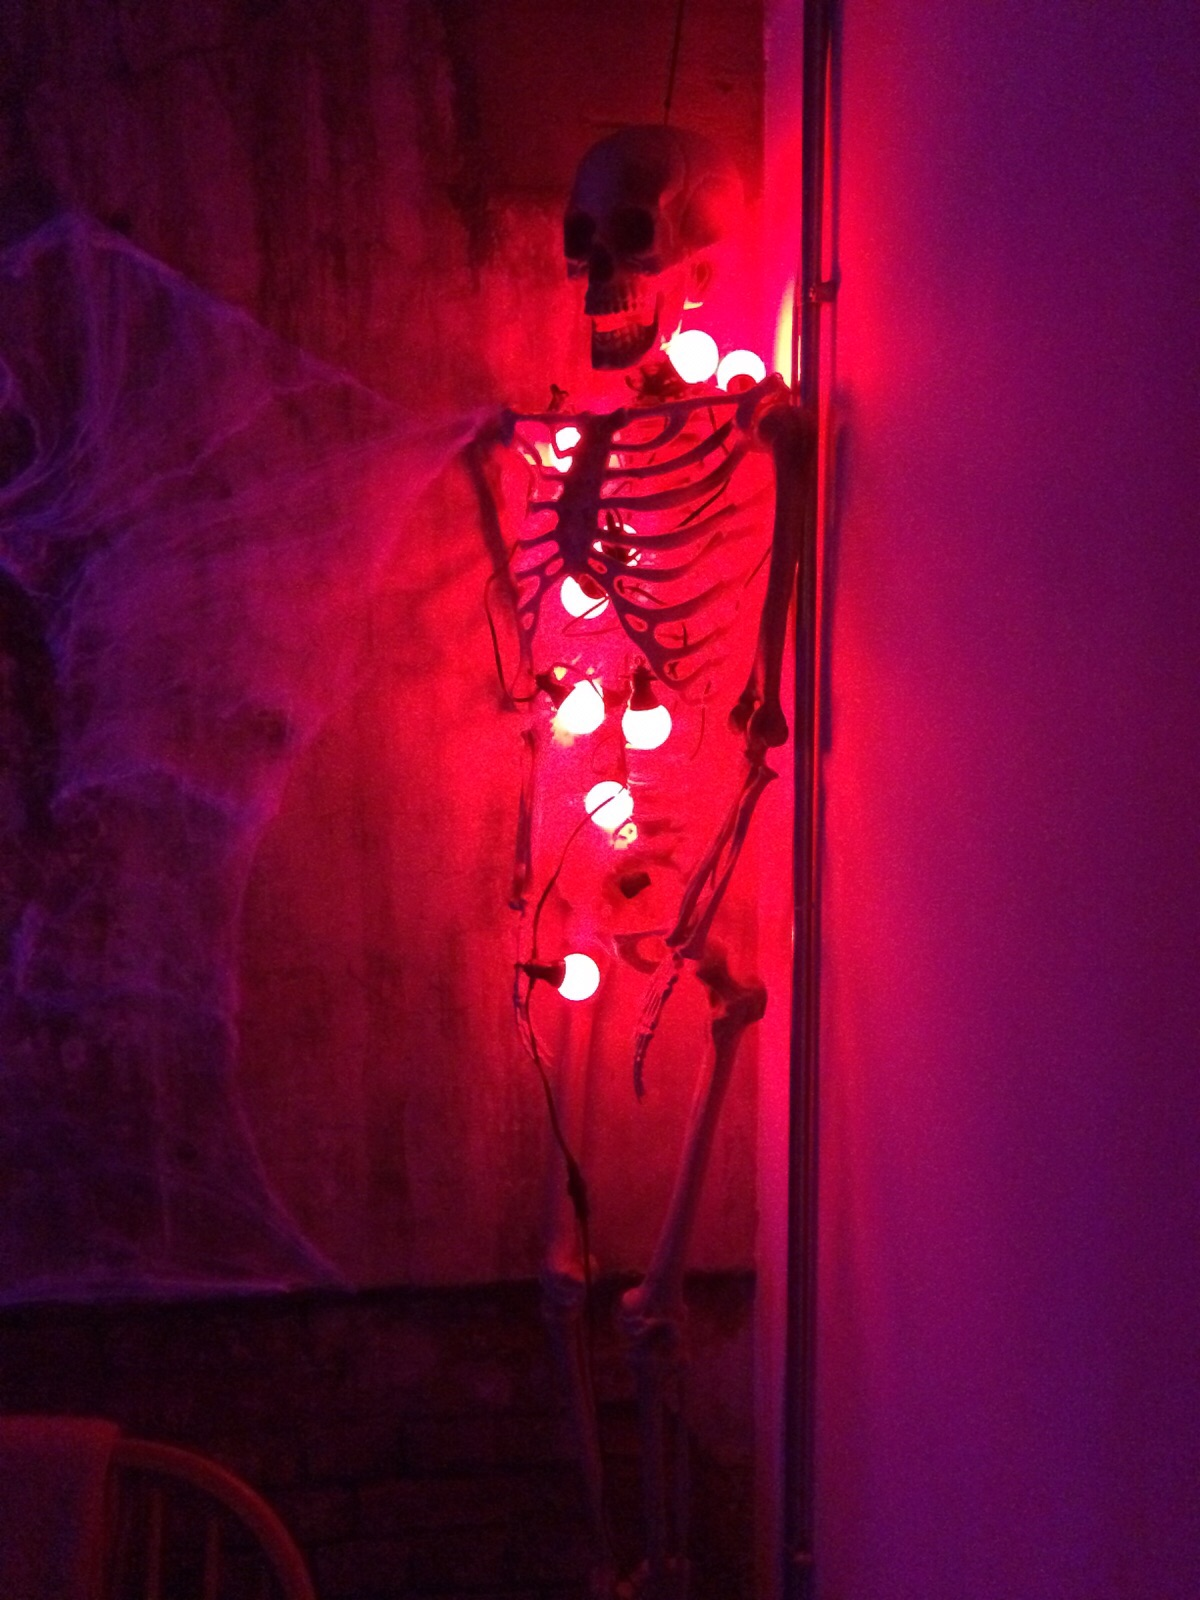 Skeleton with red light ball inside of it.